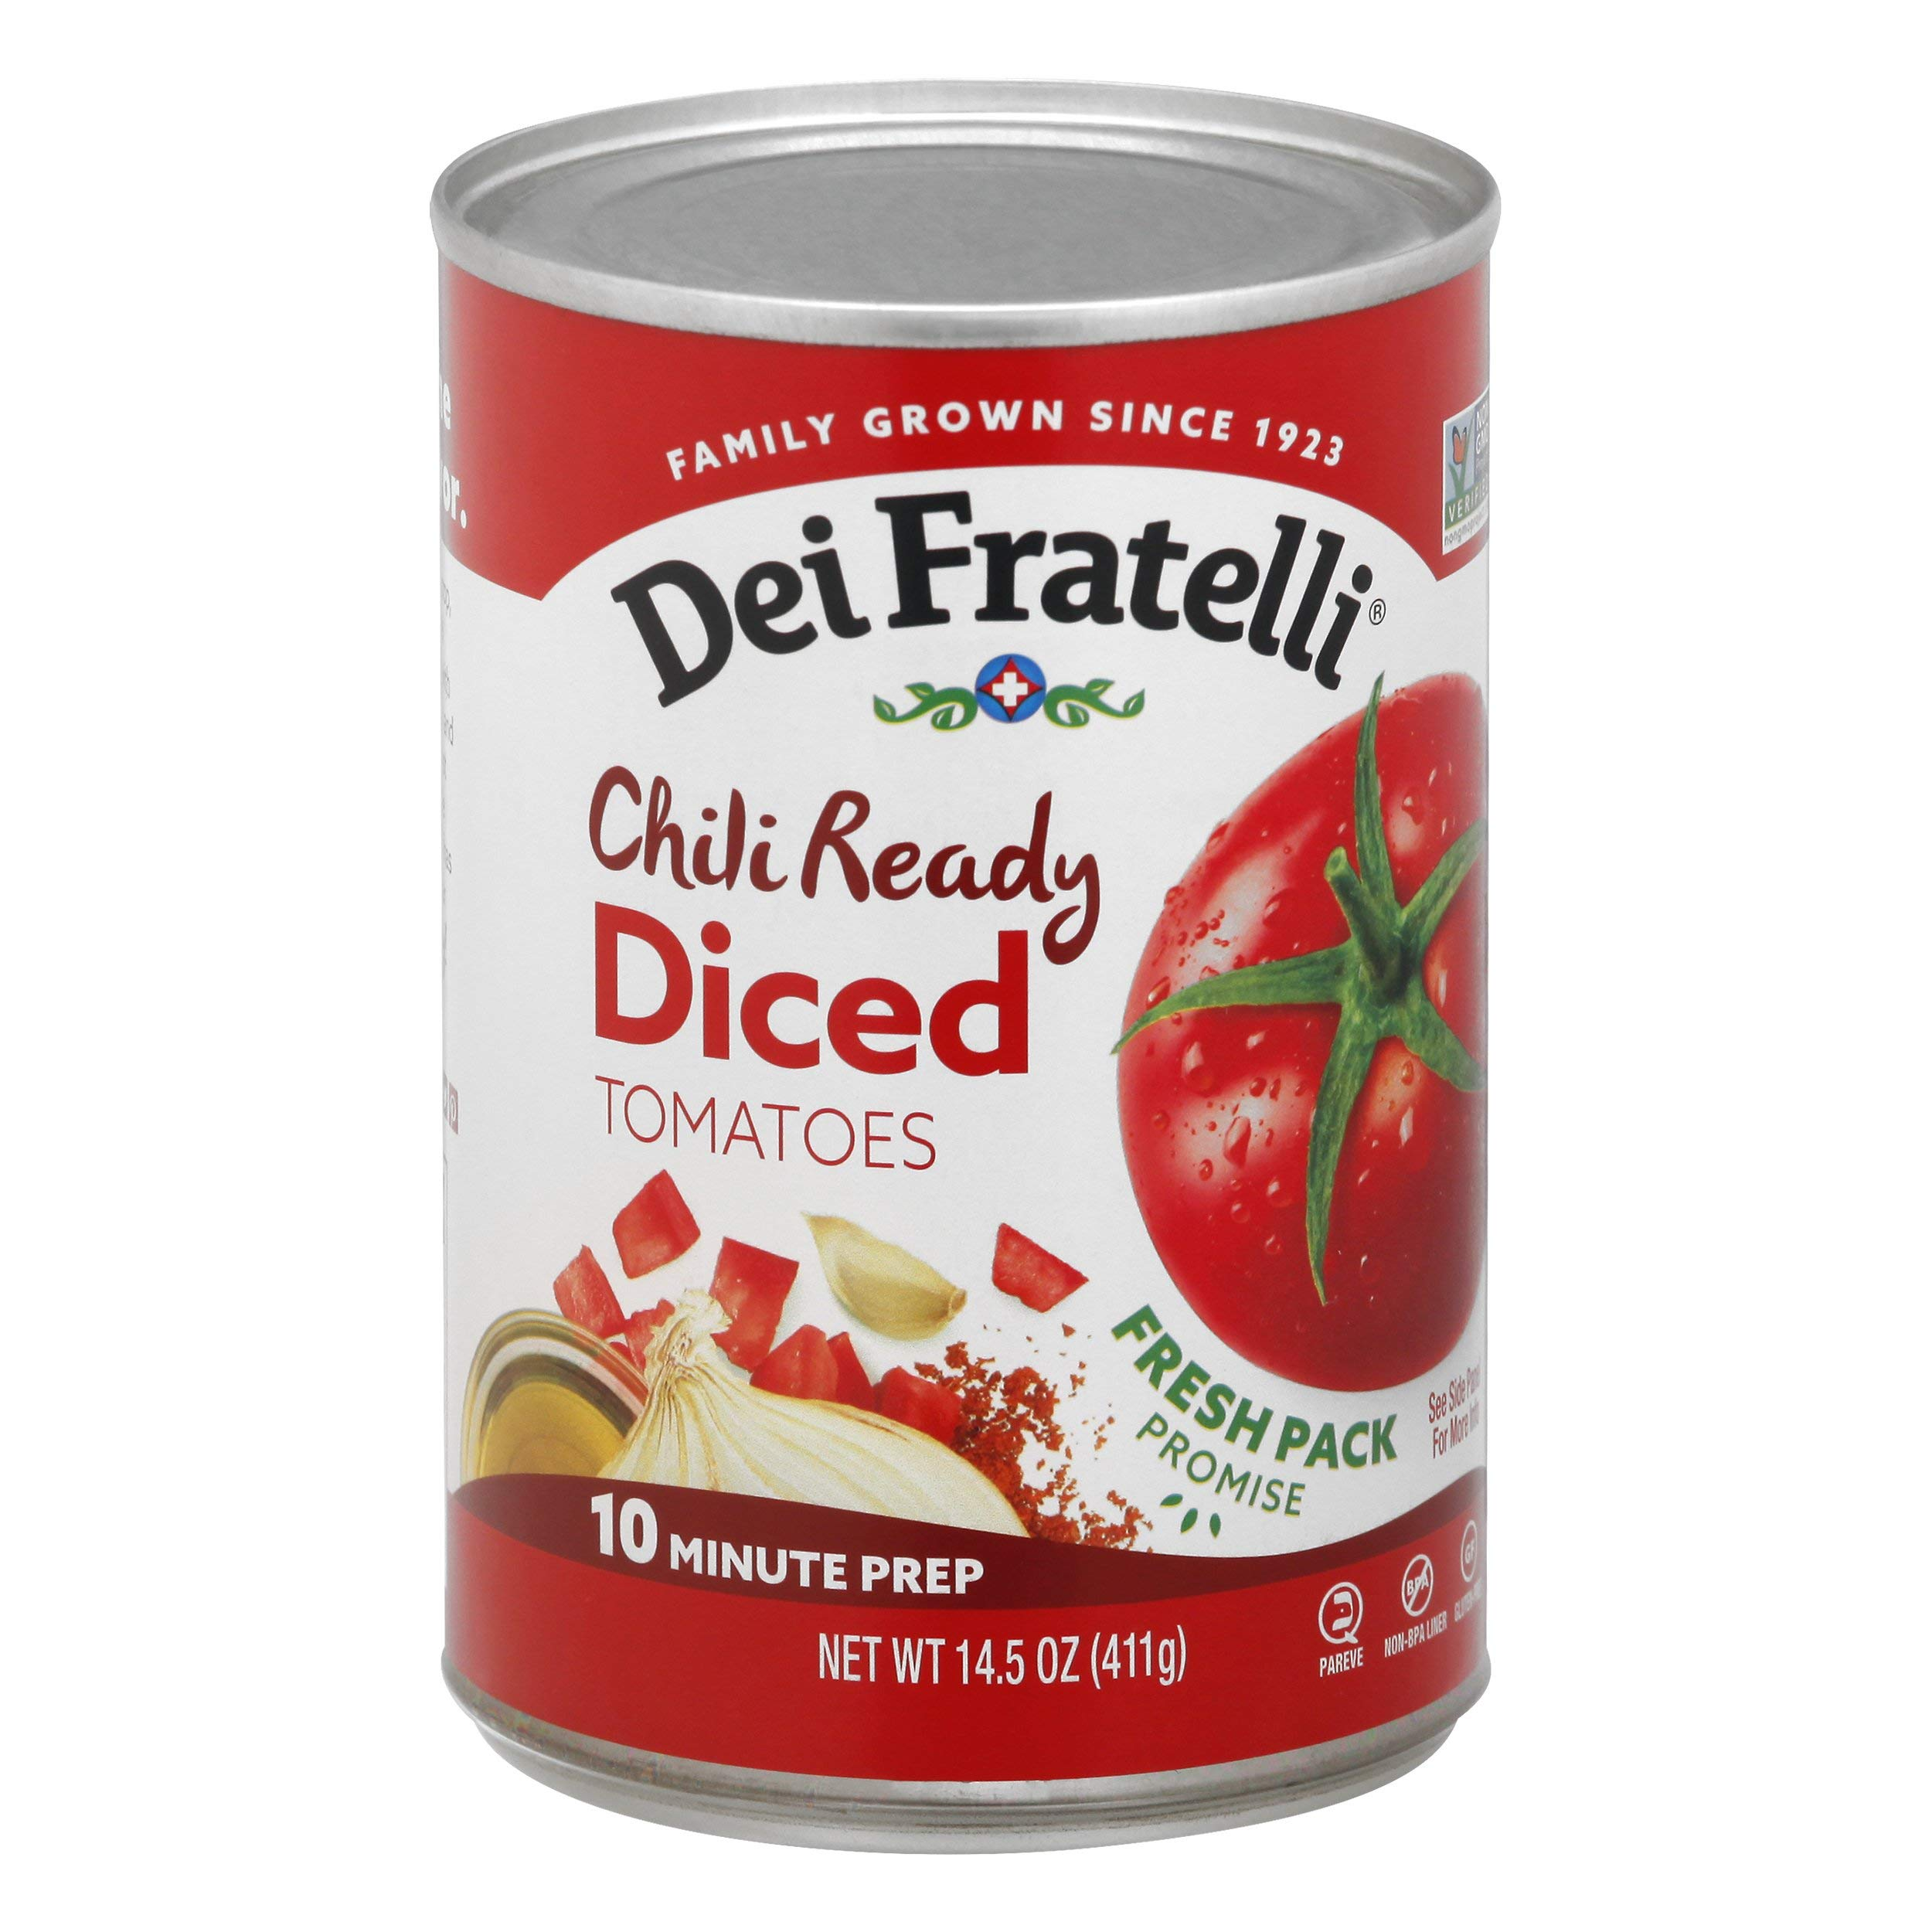 Dei Fratelli Chili Ready Diced Tomatoes - All Natural - 5th Generation Recipe (14.5 oz. cans; 12 pack)